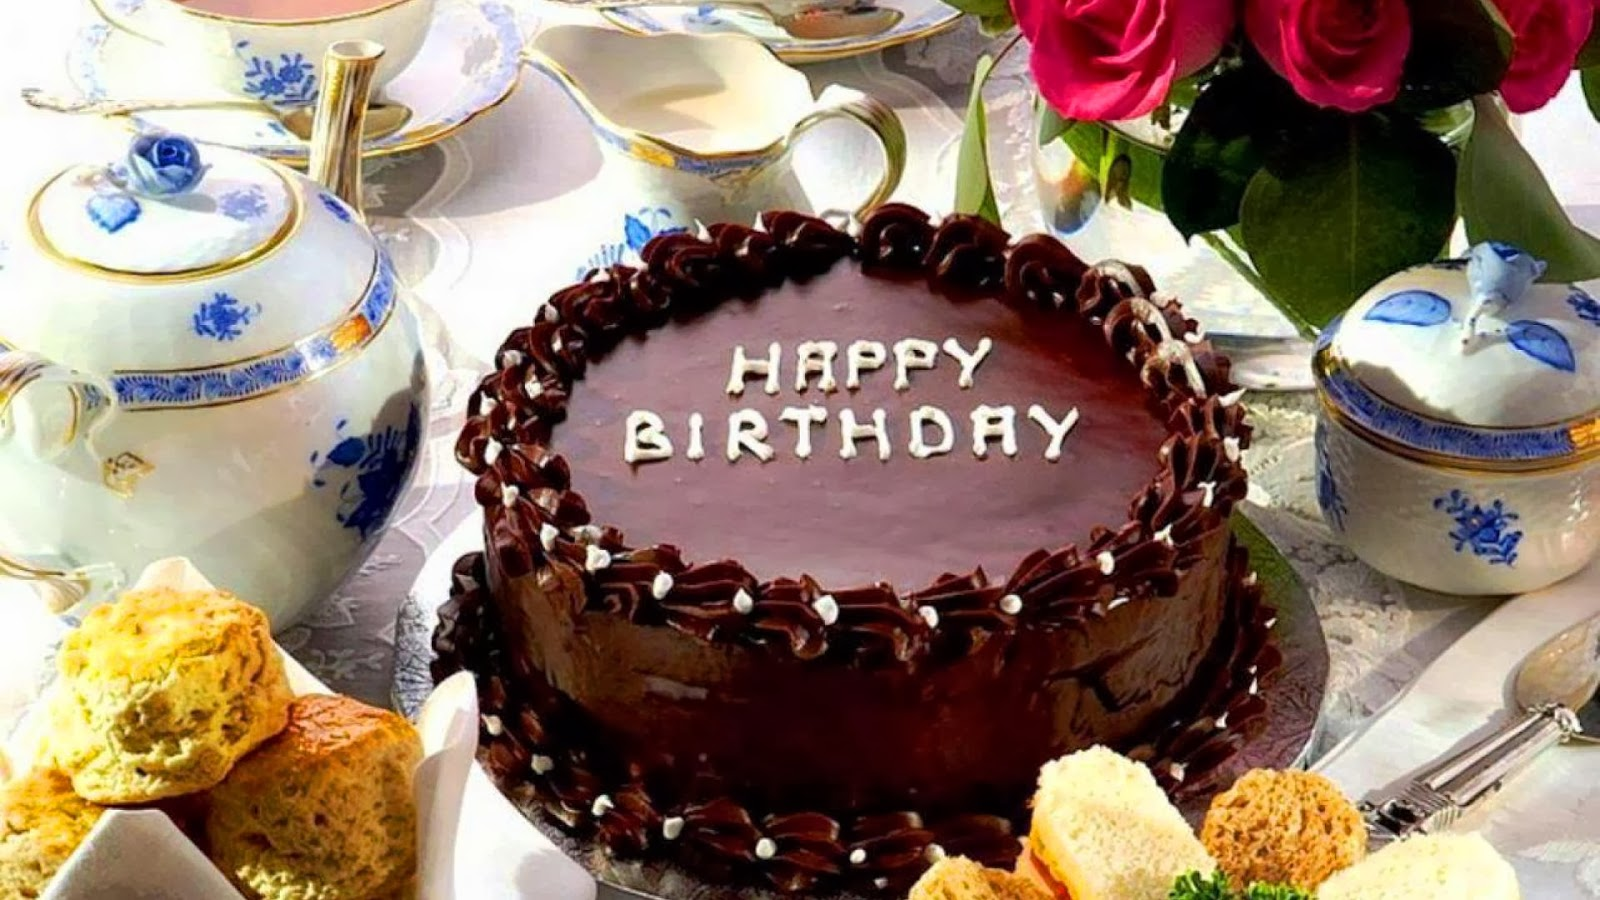 Sweet Birthday Cake Hd Images : Chocolate Cake HD Wallpapers Free Download ~ Unique Wallpapers